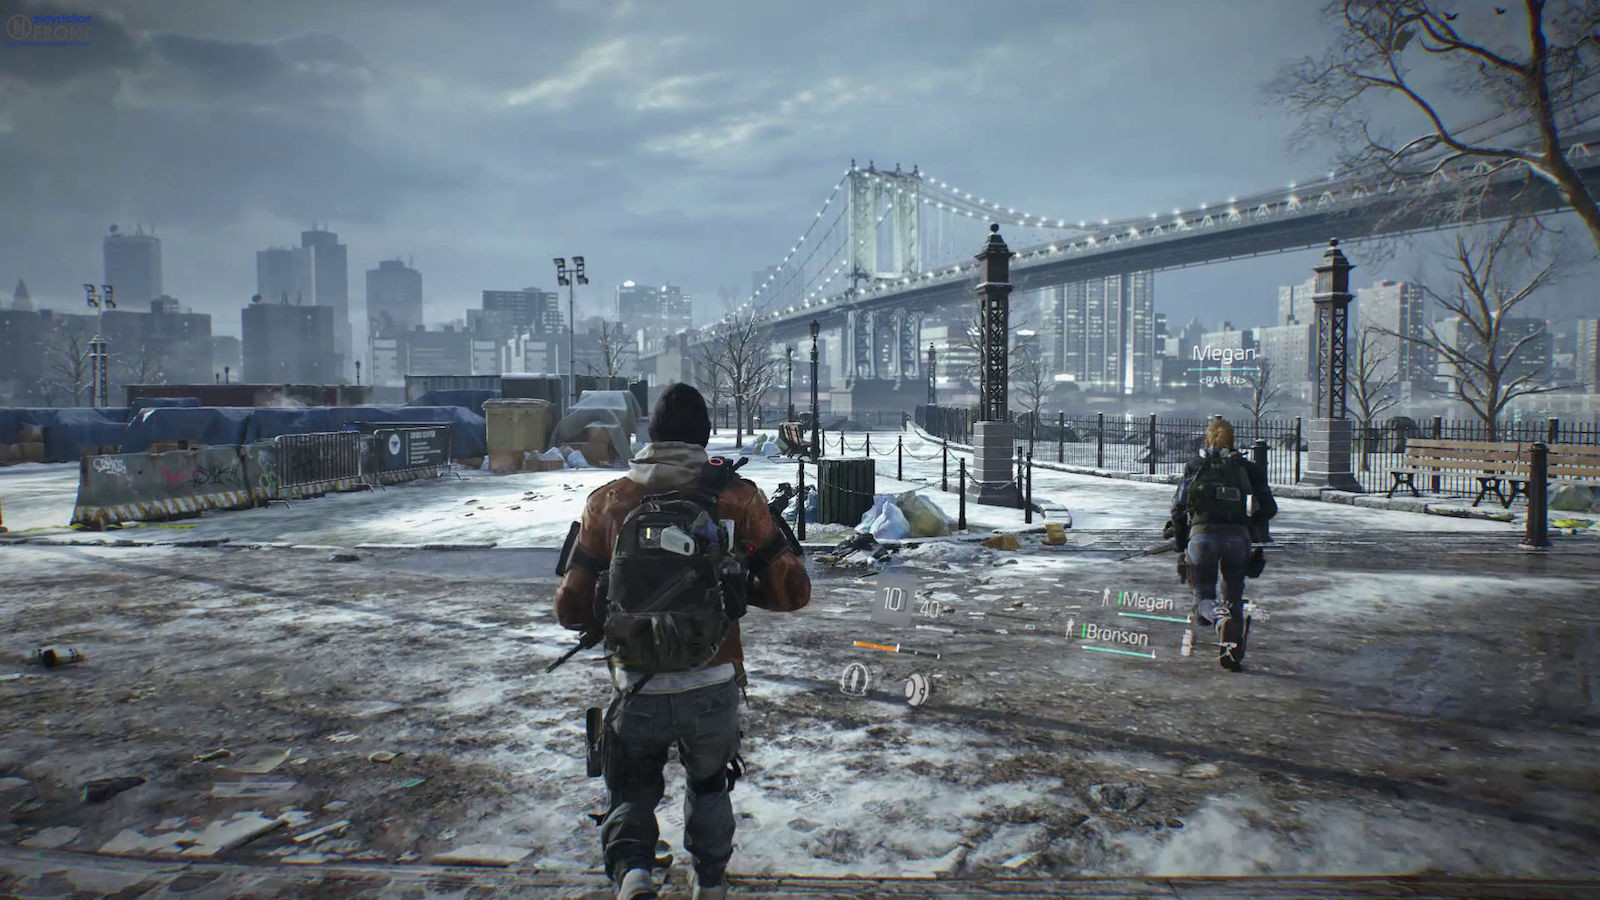 6. Tom Clancy's The Division.